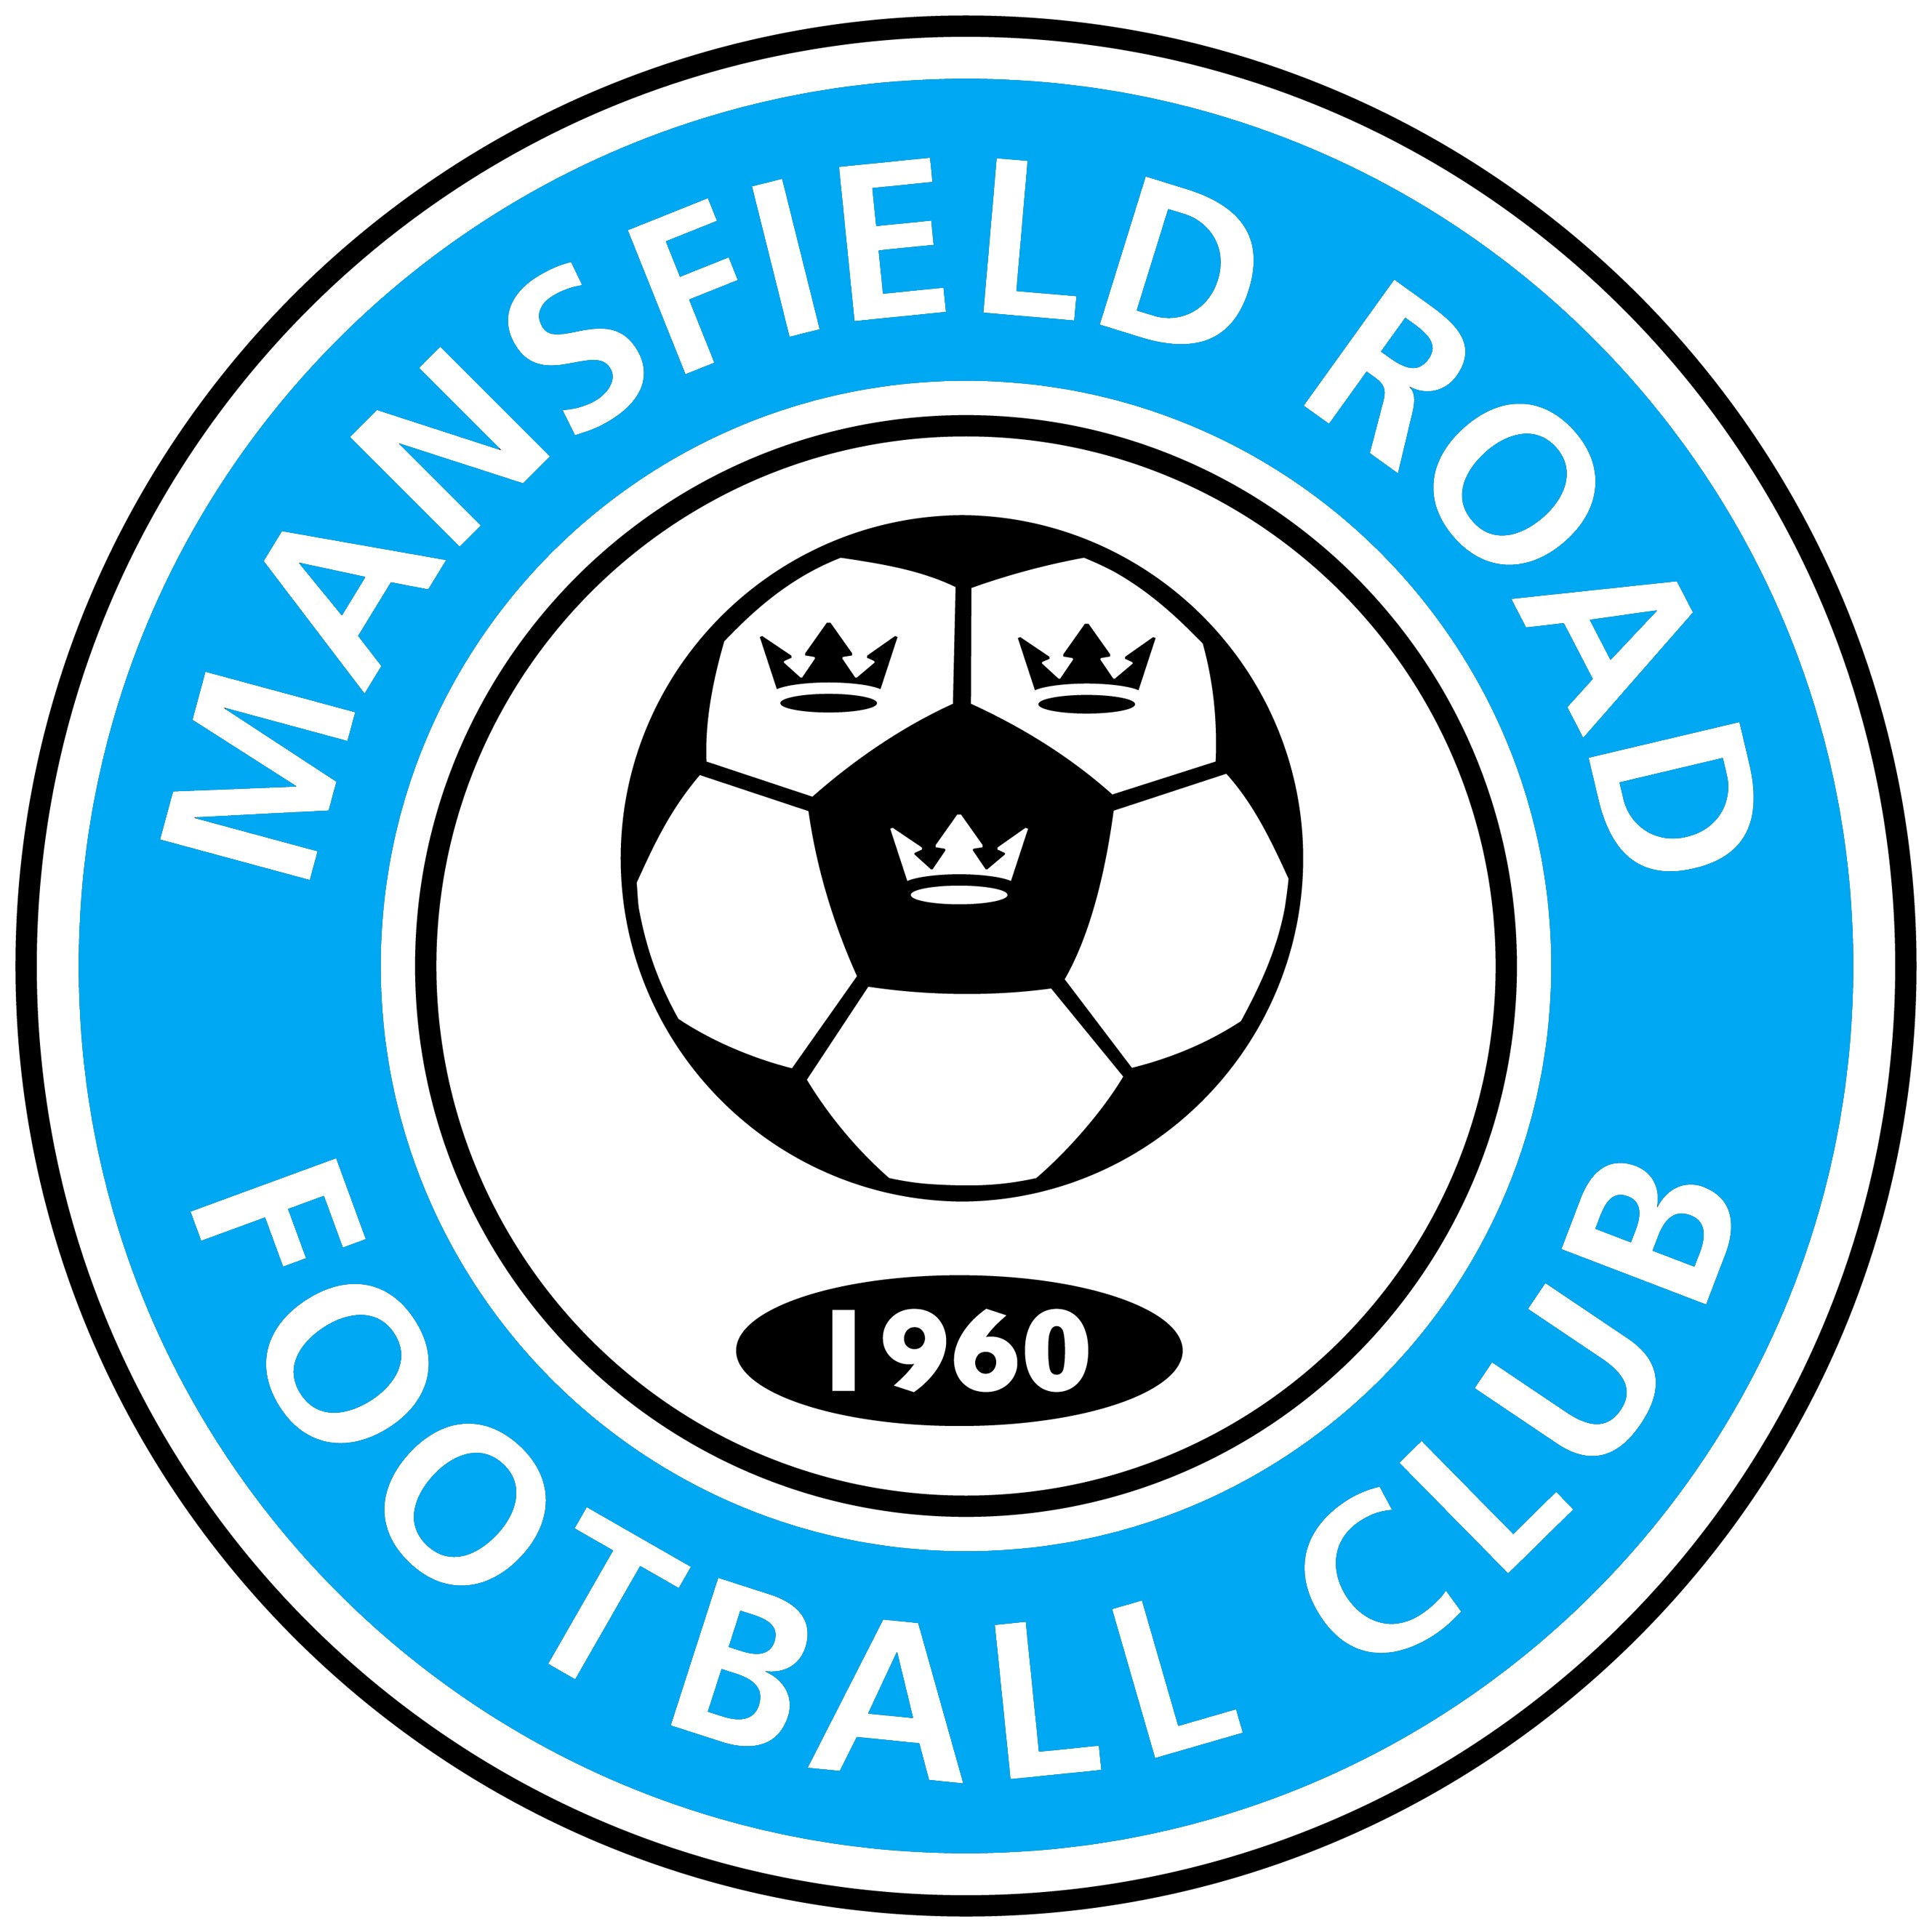 Mansfield road football club logo large